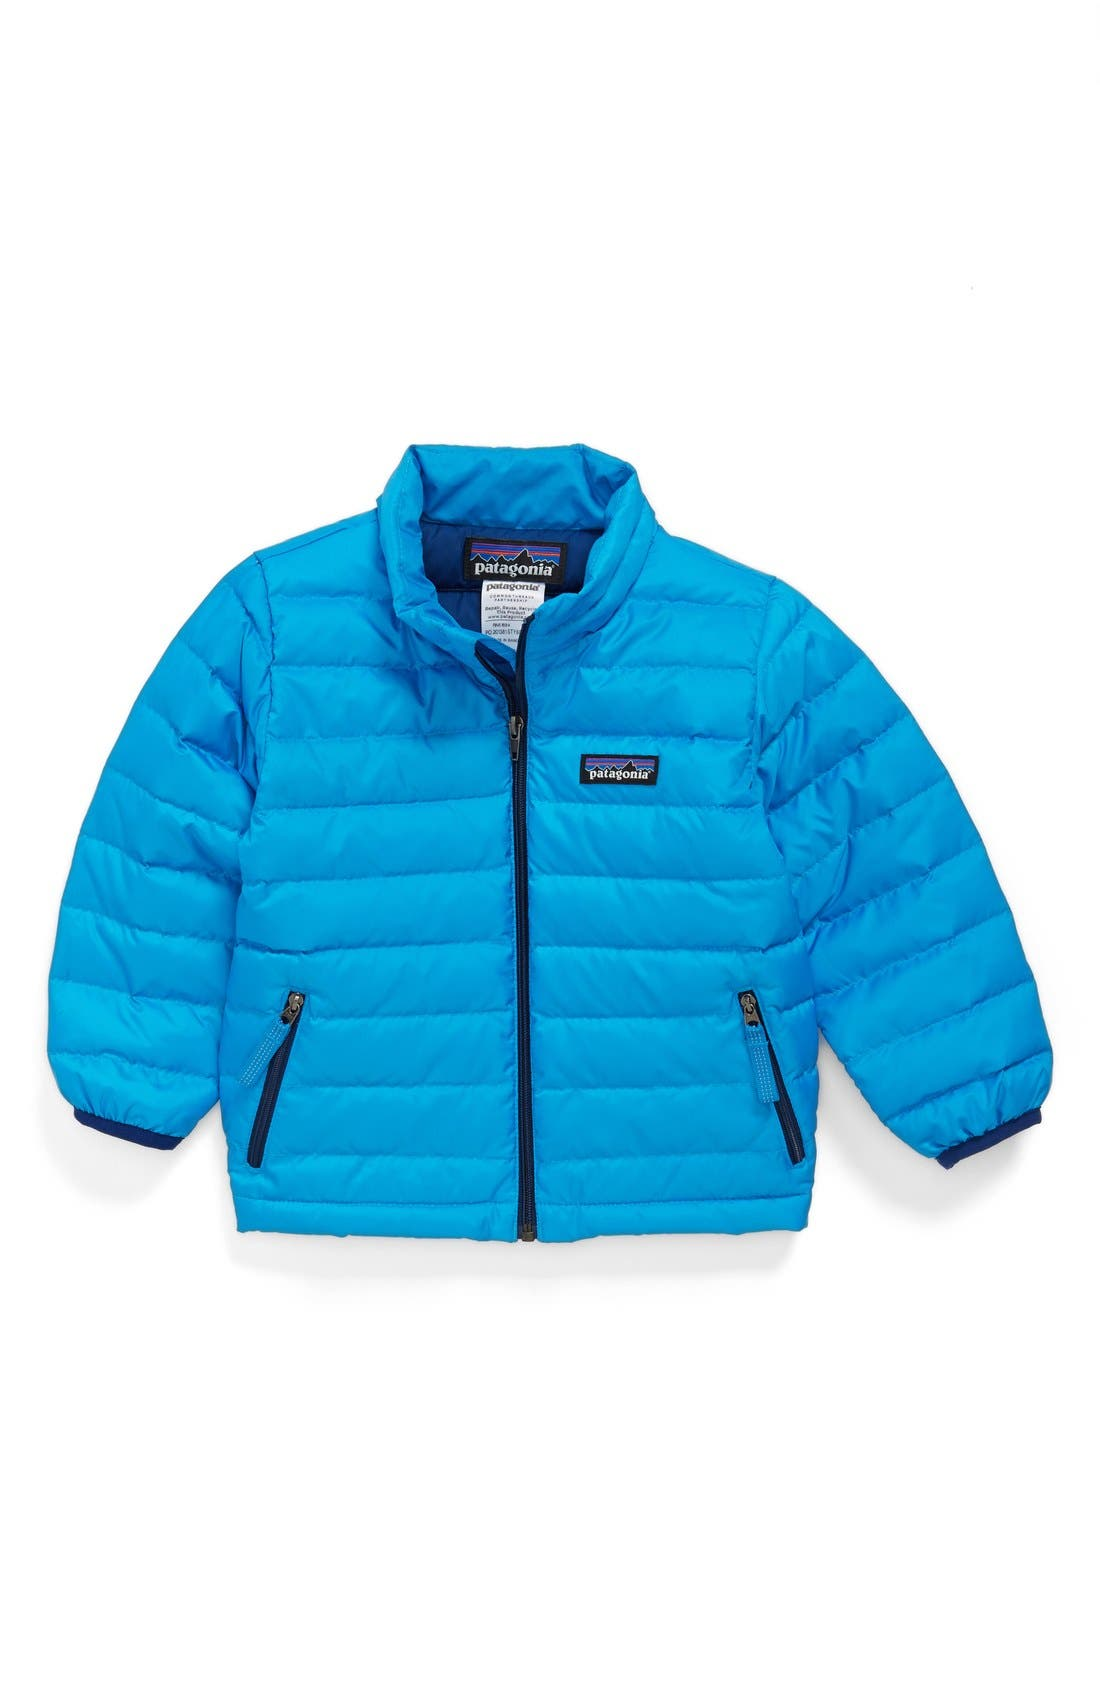 Alternate Image 1 Selected - Patagonia Down Sweater Jacket (Baby Boys) (Online Only)